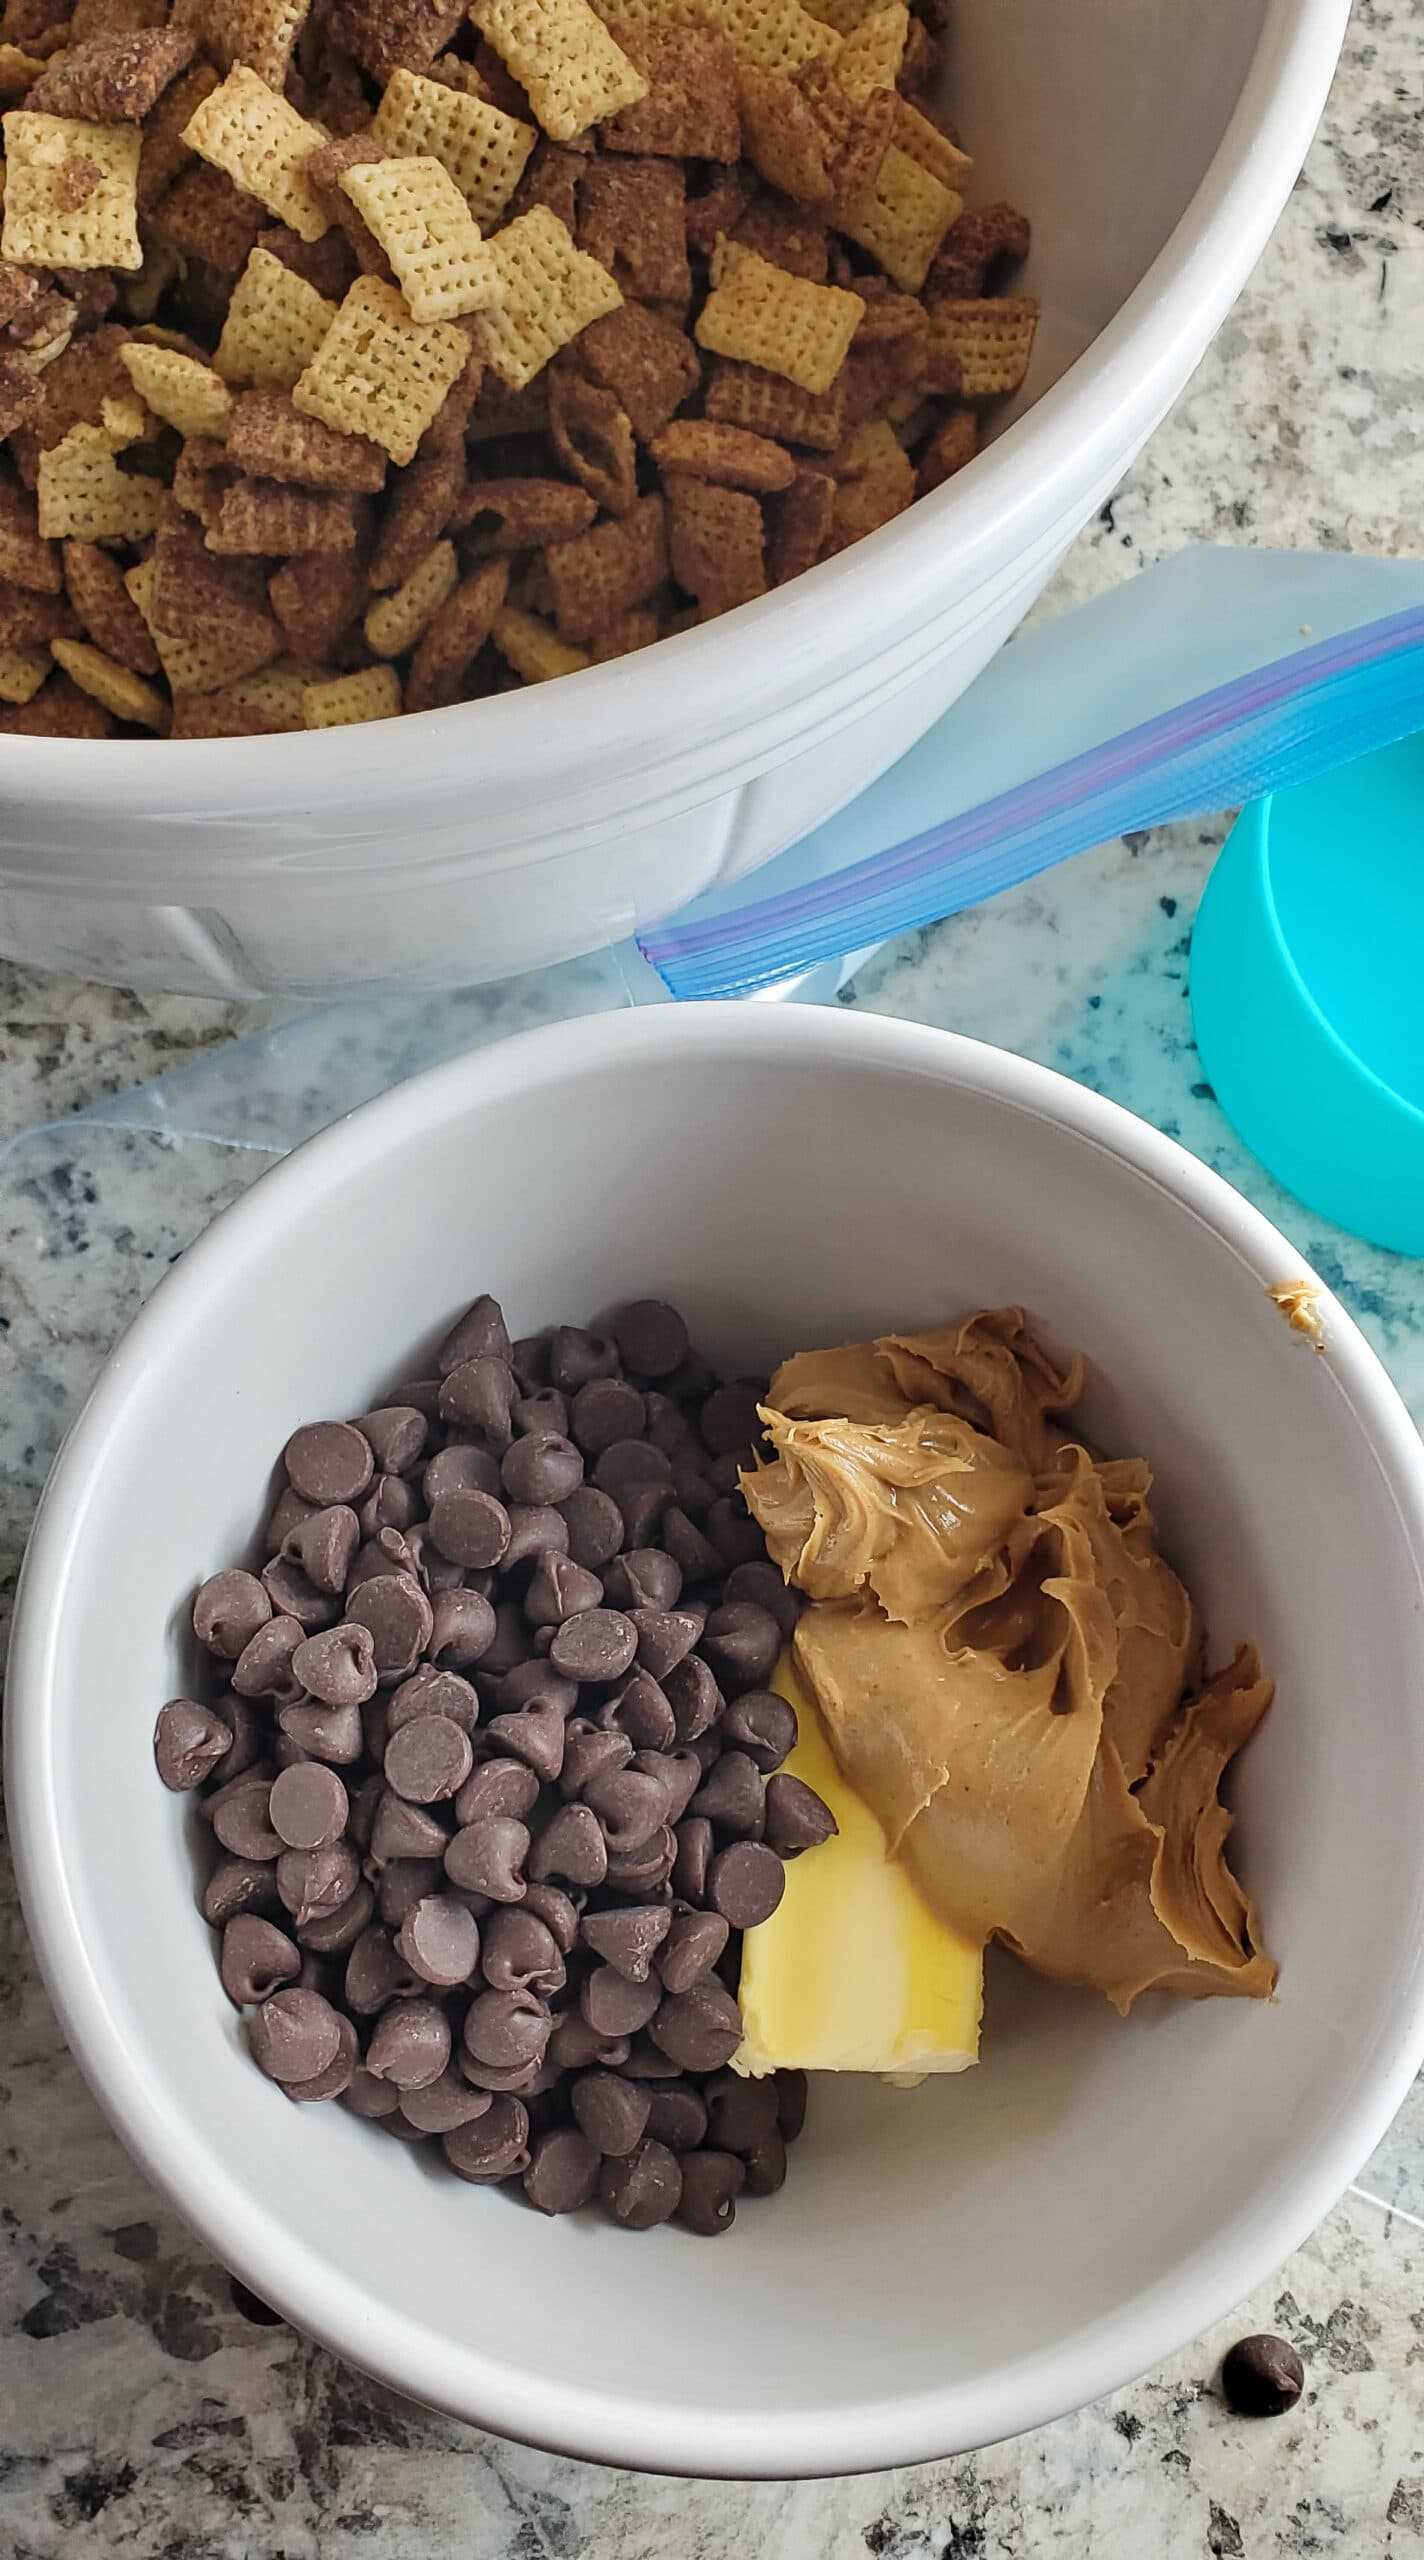 Scooby Snacks Step 1. If you enjoy solving a good old mystery with your favorite gang of meddling kids, then you will love this Scooby Snack Recipe. It's full of chocolate, peanut butter and is said to be Scooby's favorite snack when he watches movies.